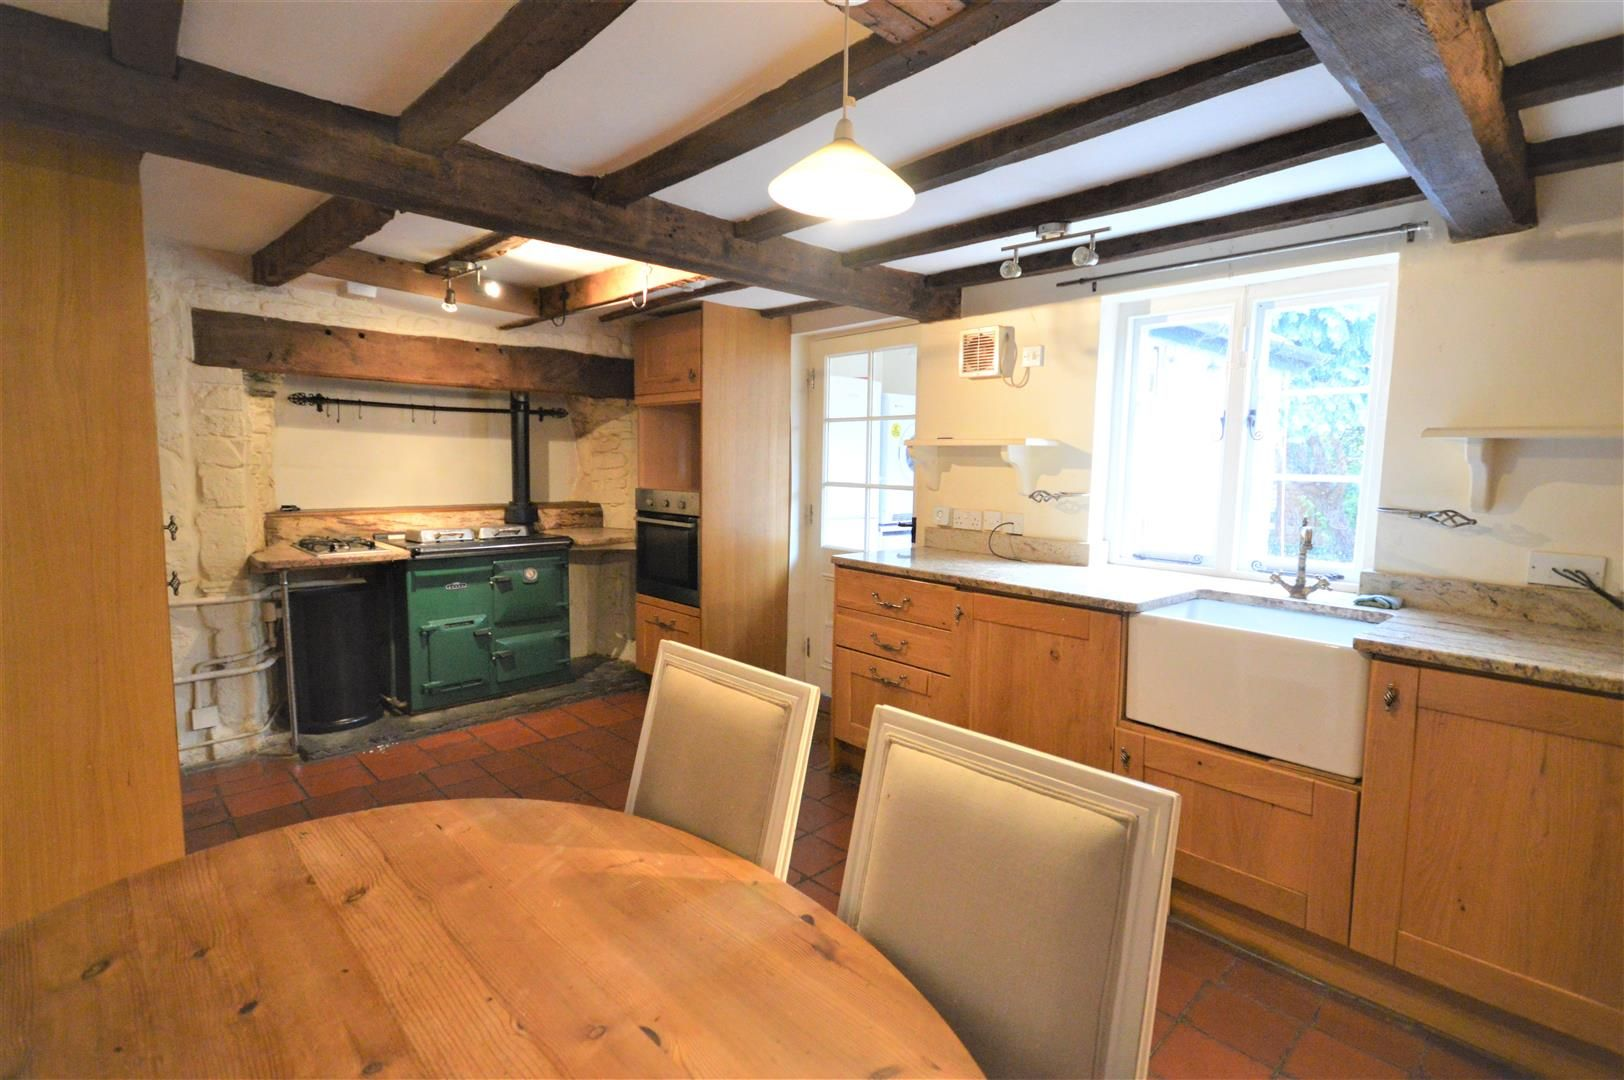 4 bed terraced for sale in Leominster  - Property Image 3